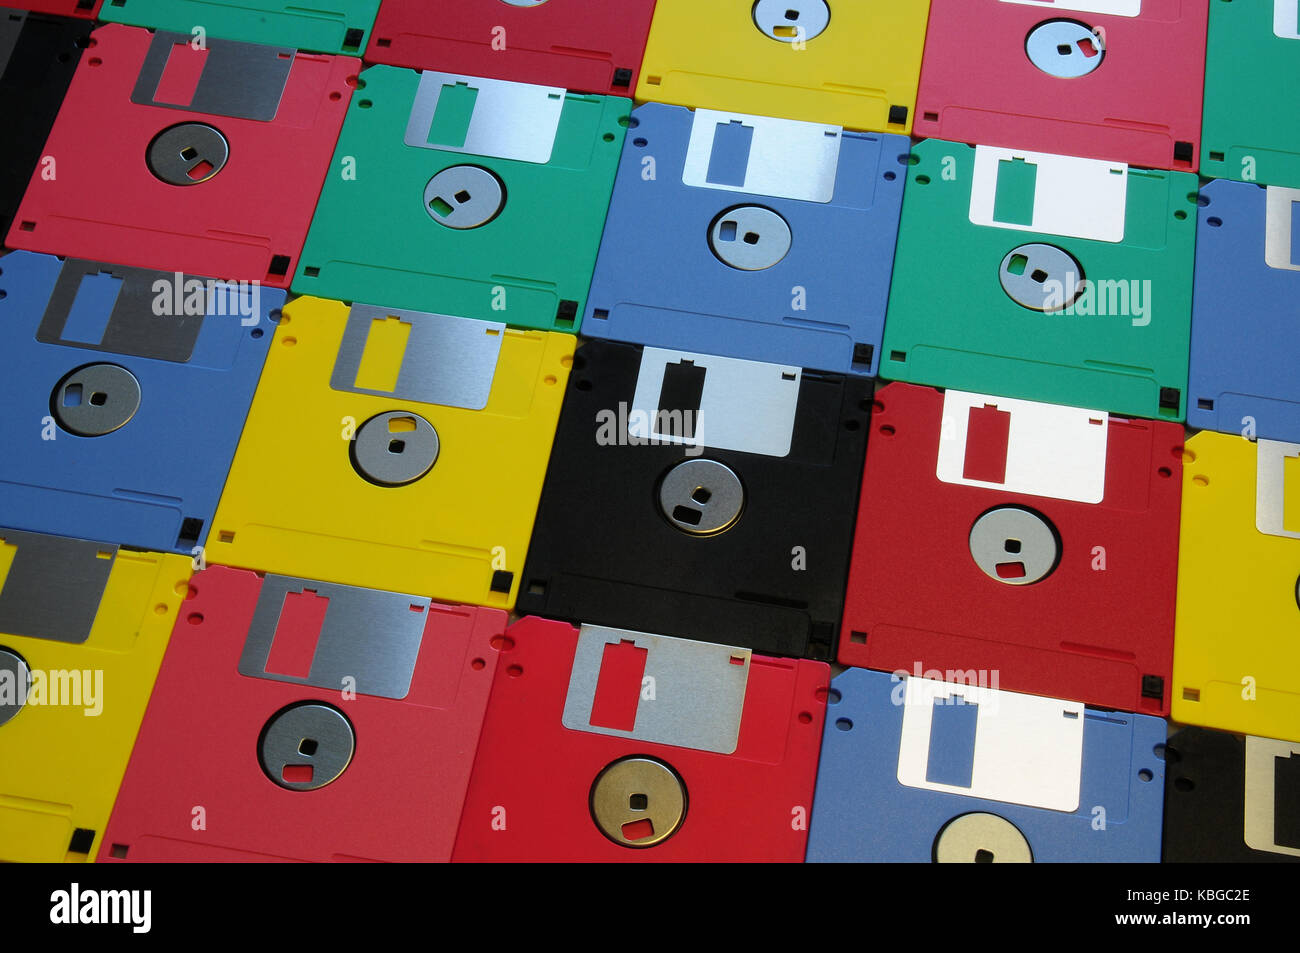 Red Floppy Disc Stock Photos Red Floppy Disc Stock Images